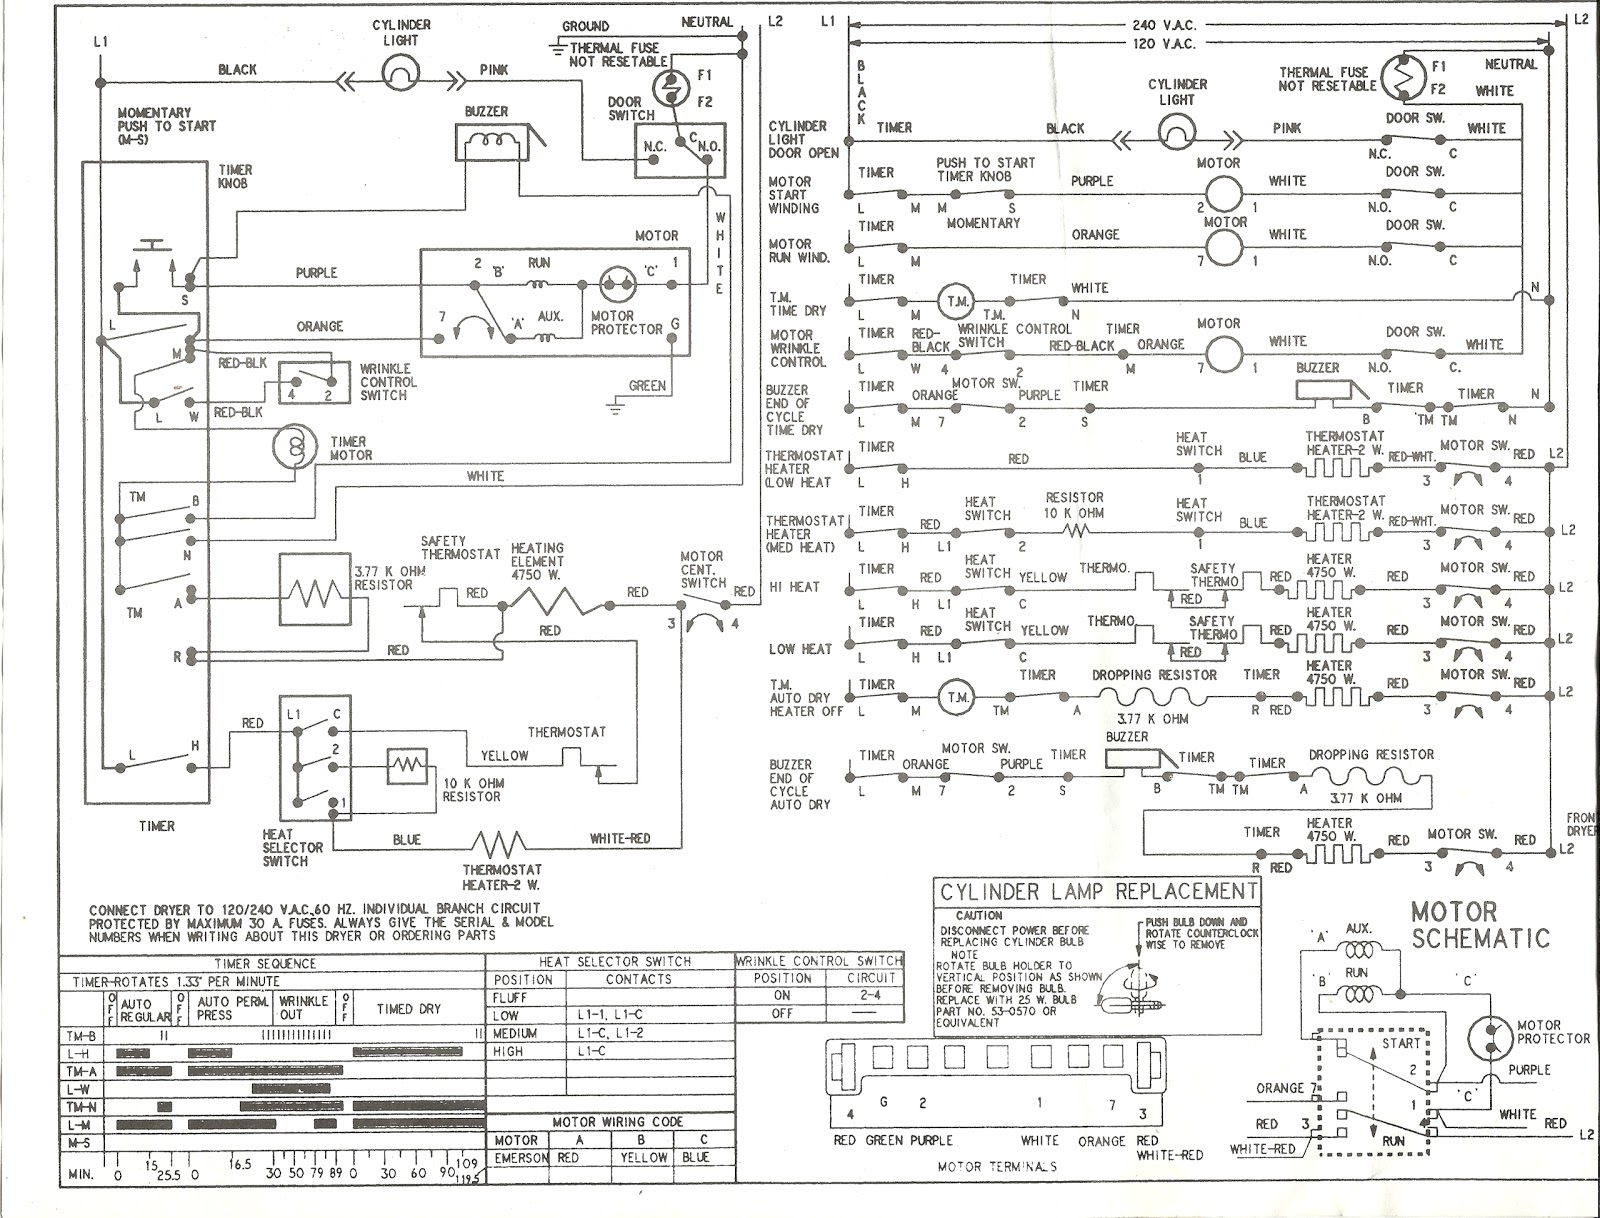 kenmore washer wiring diagram on wiring diagram parts wiring for kenmore 80 series washer parts diagram wiring diagram for whirlpool washer on wiring download wirning  at sewacar.co